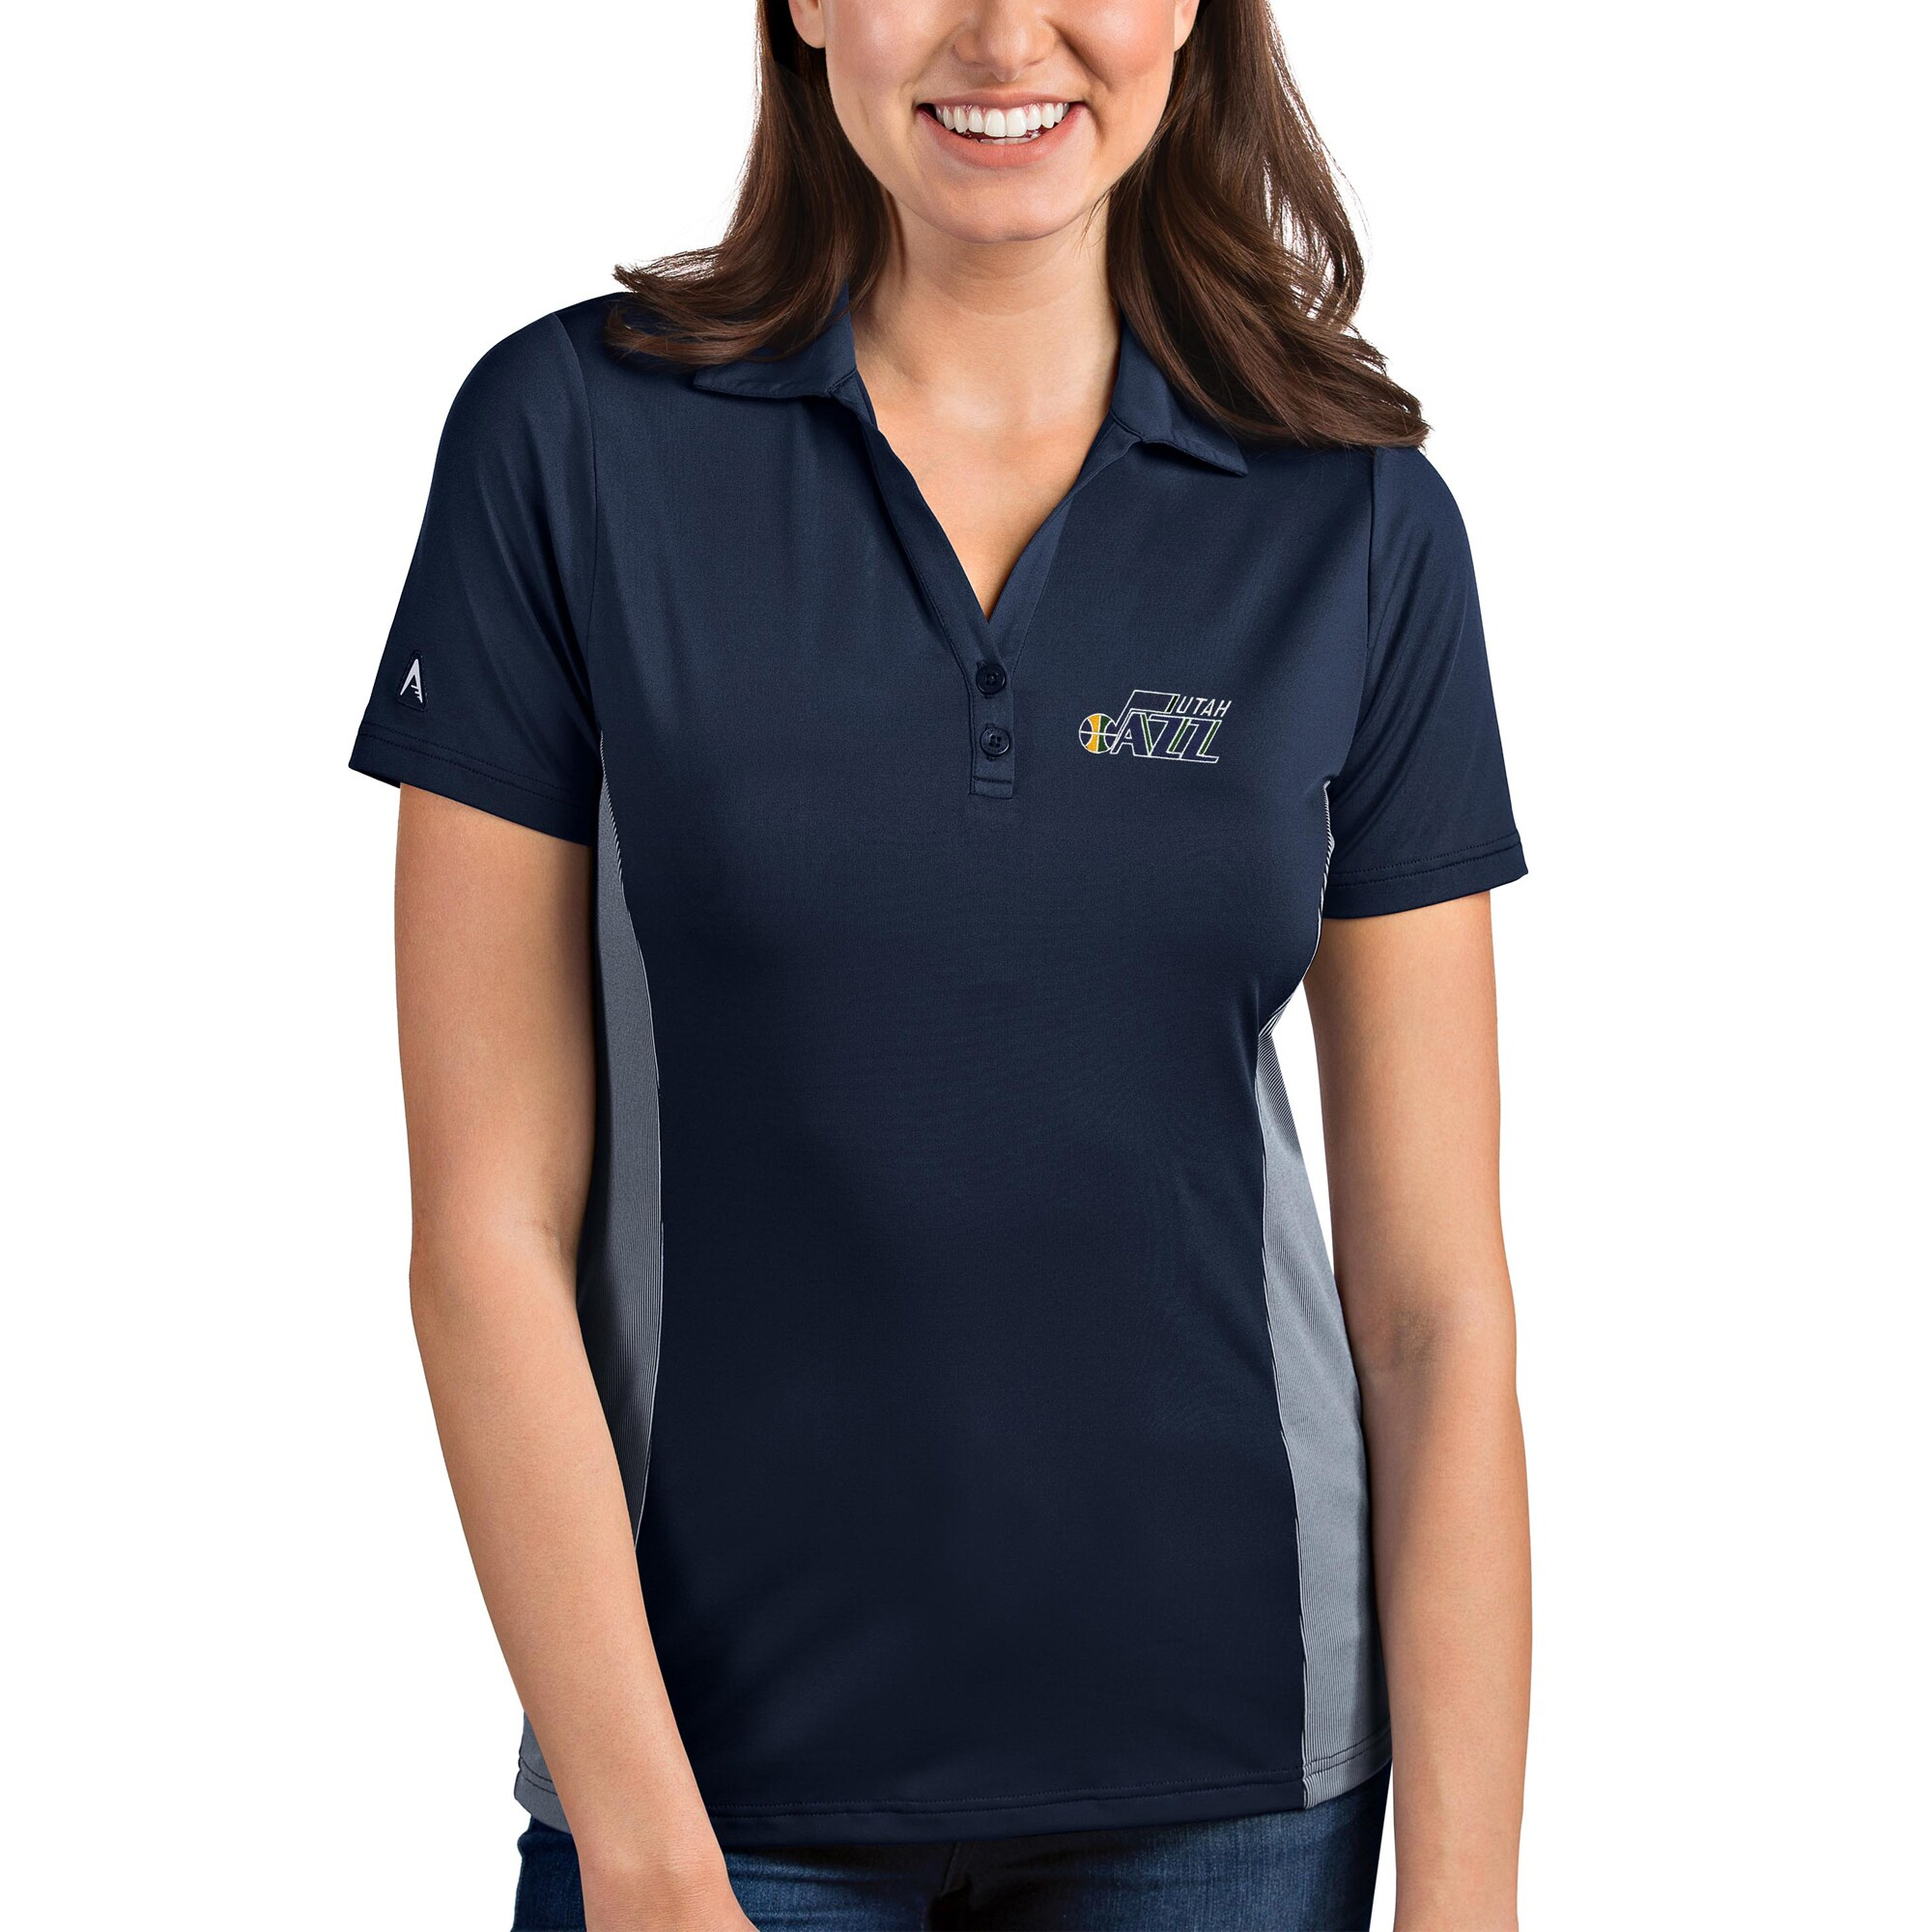 Utah Jazz Antigua Women's Venture Polo - Navy/White